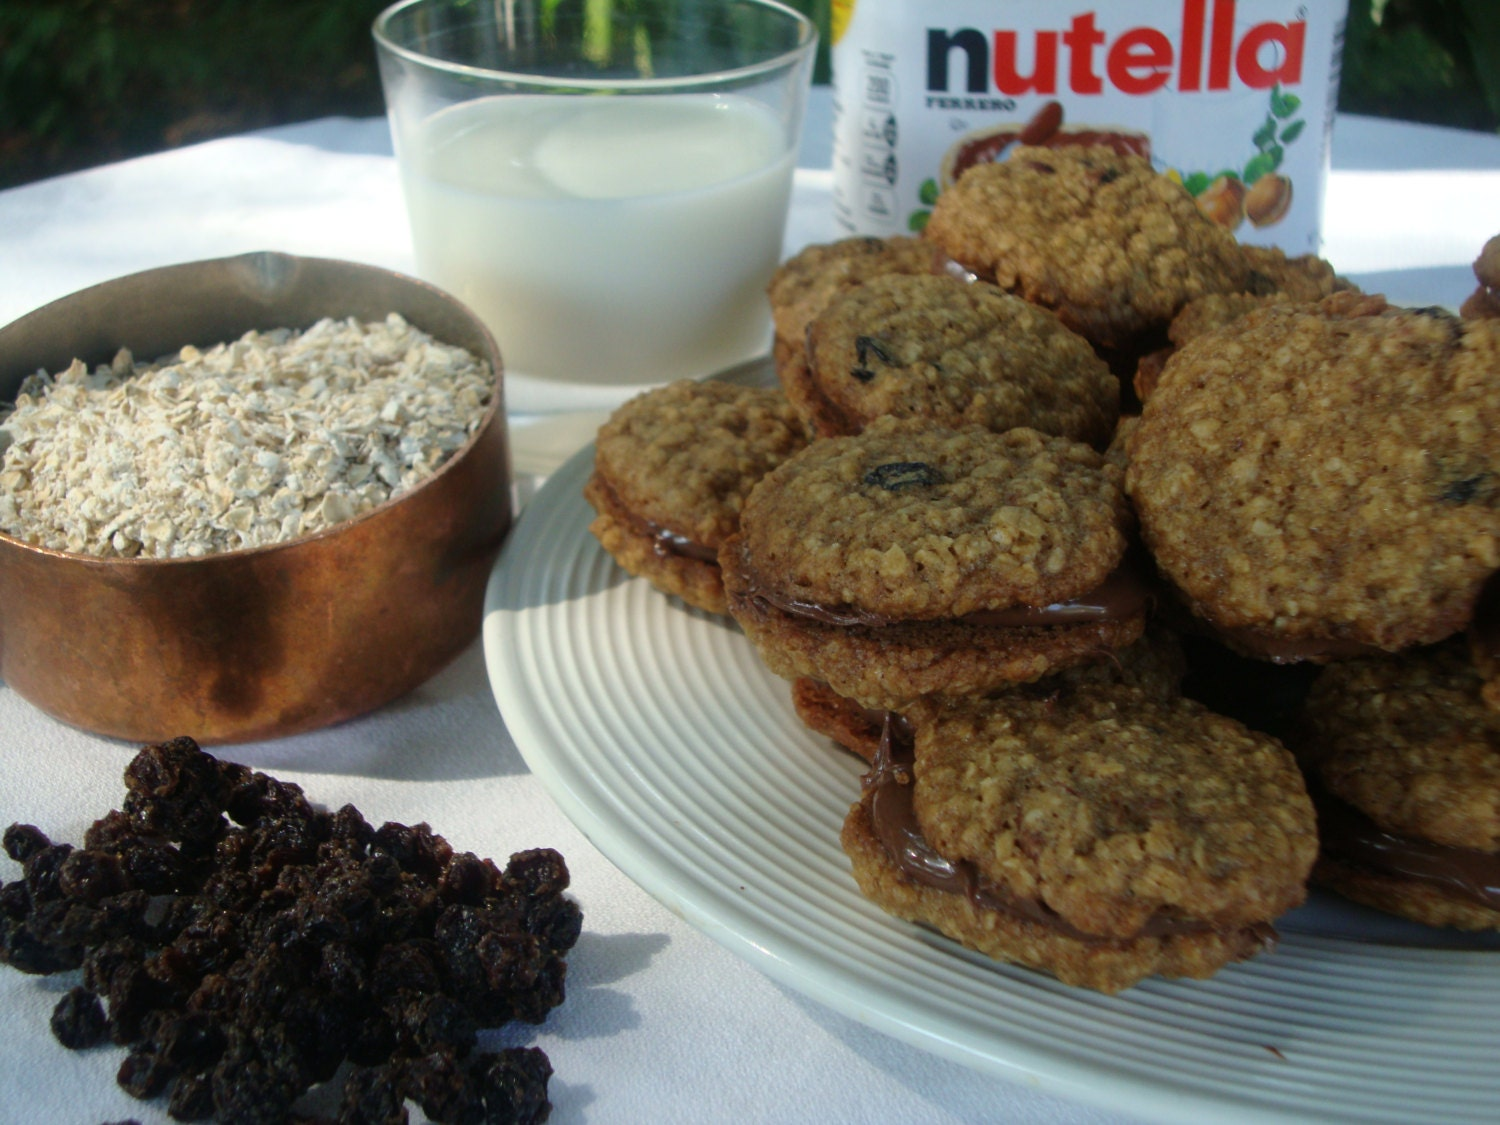 Oatmeal Currant Lace Cookies with Nutella Sandwich by GigisTable